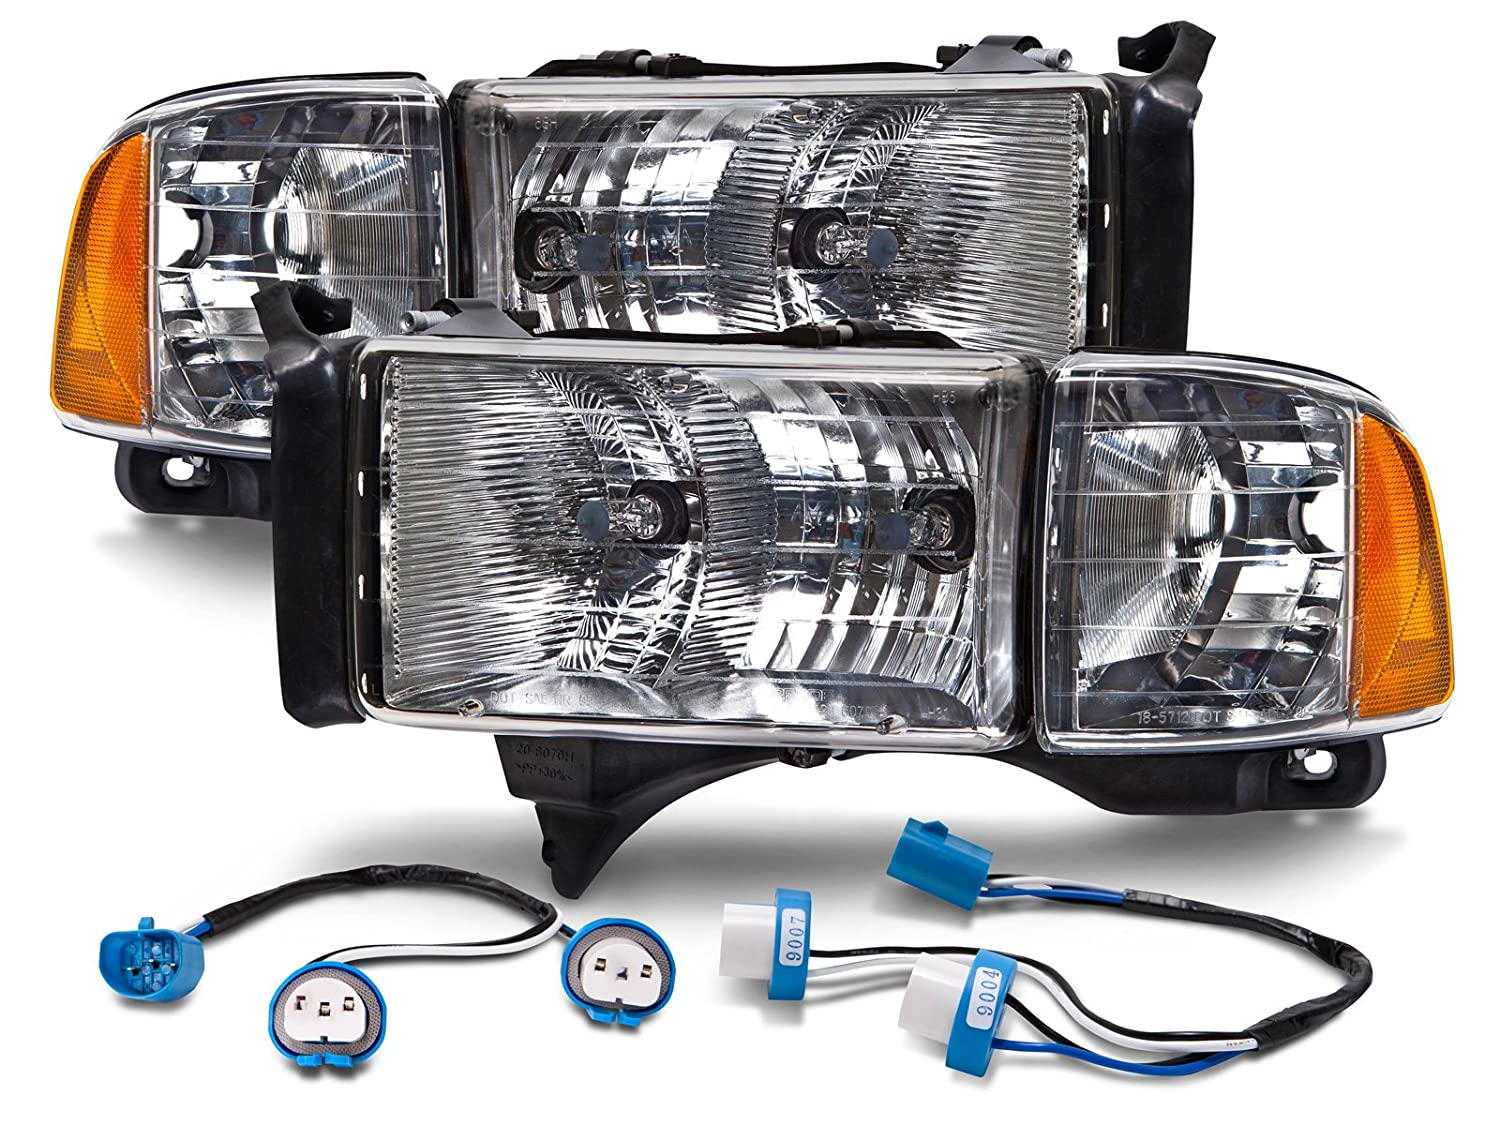 81dlEuep7%2BL._SL1500_ amazon com dodge ram truck sport model conversion set w wiring 2001 dodge ram 3500 headlight wiring diagram at crackthecode.co